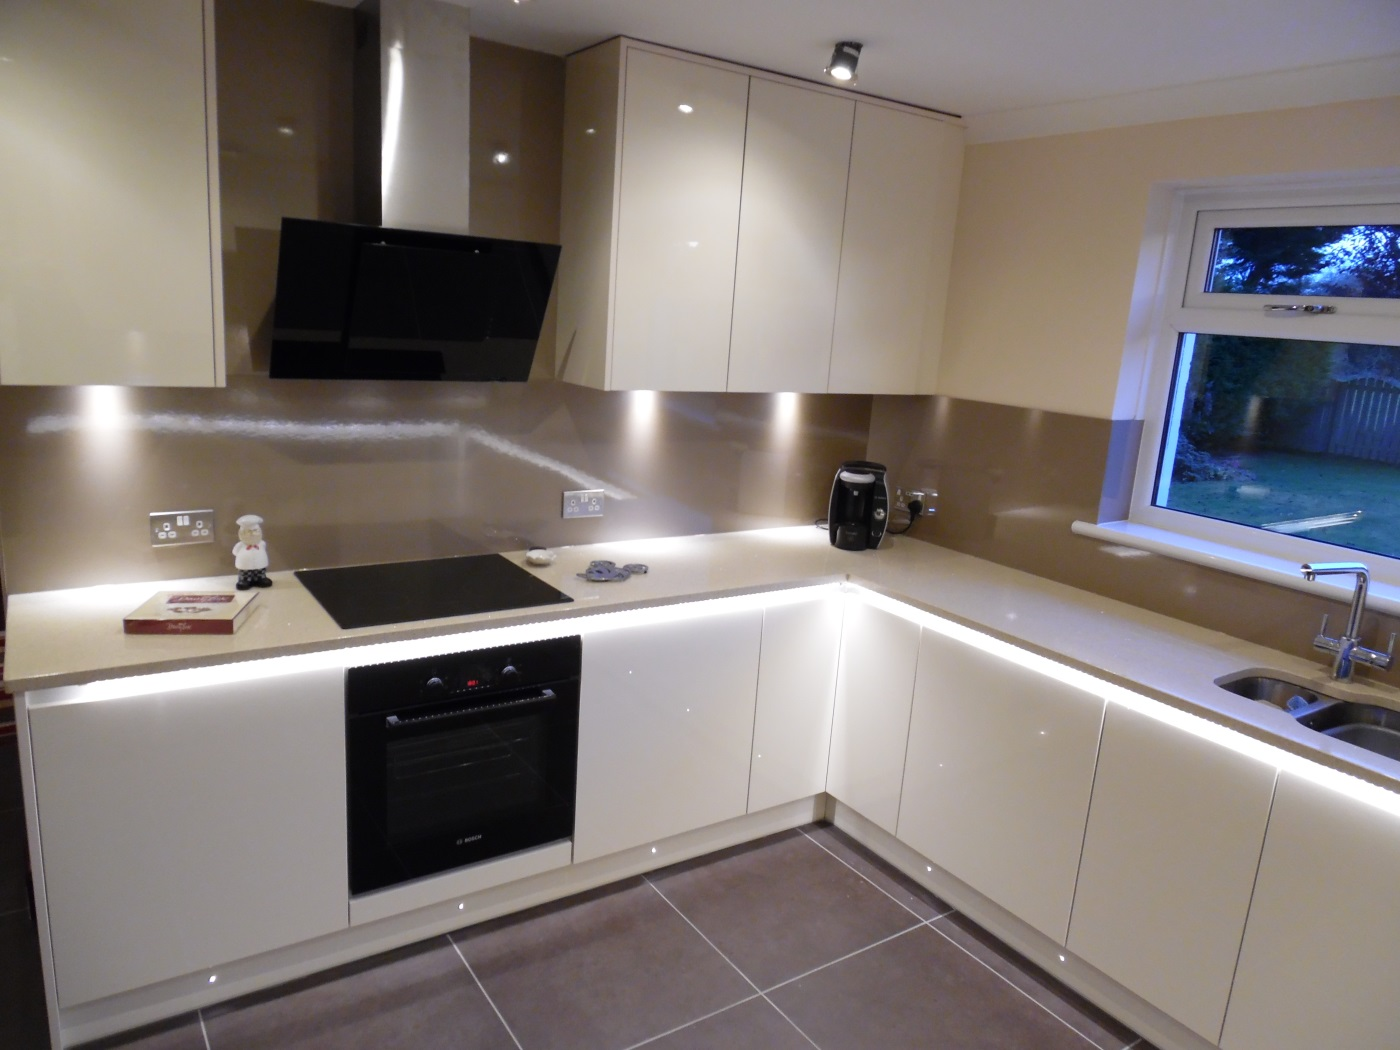 Clarkston Kitchen Design